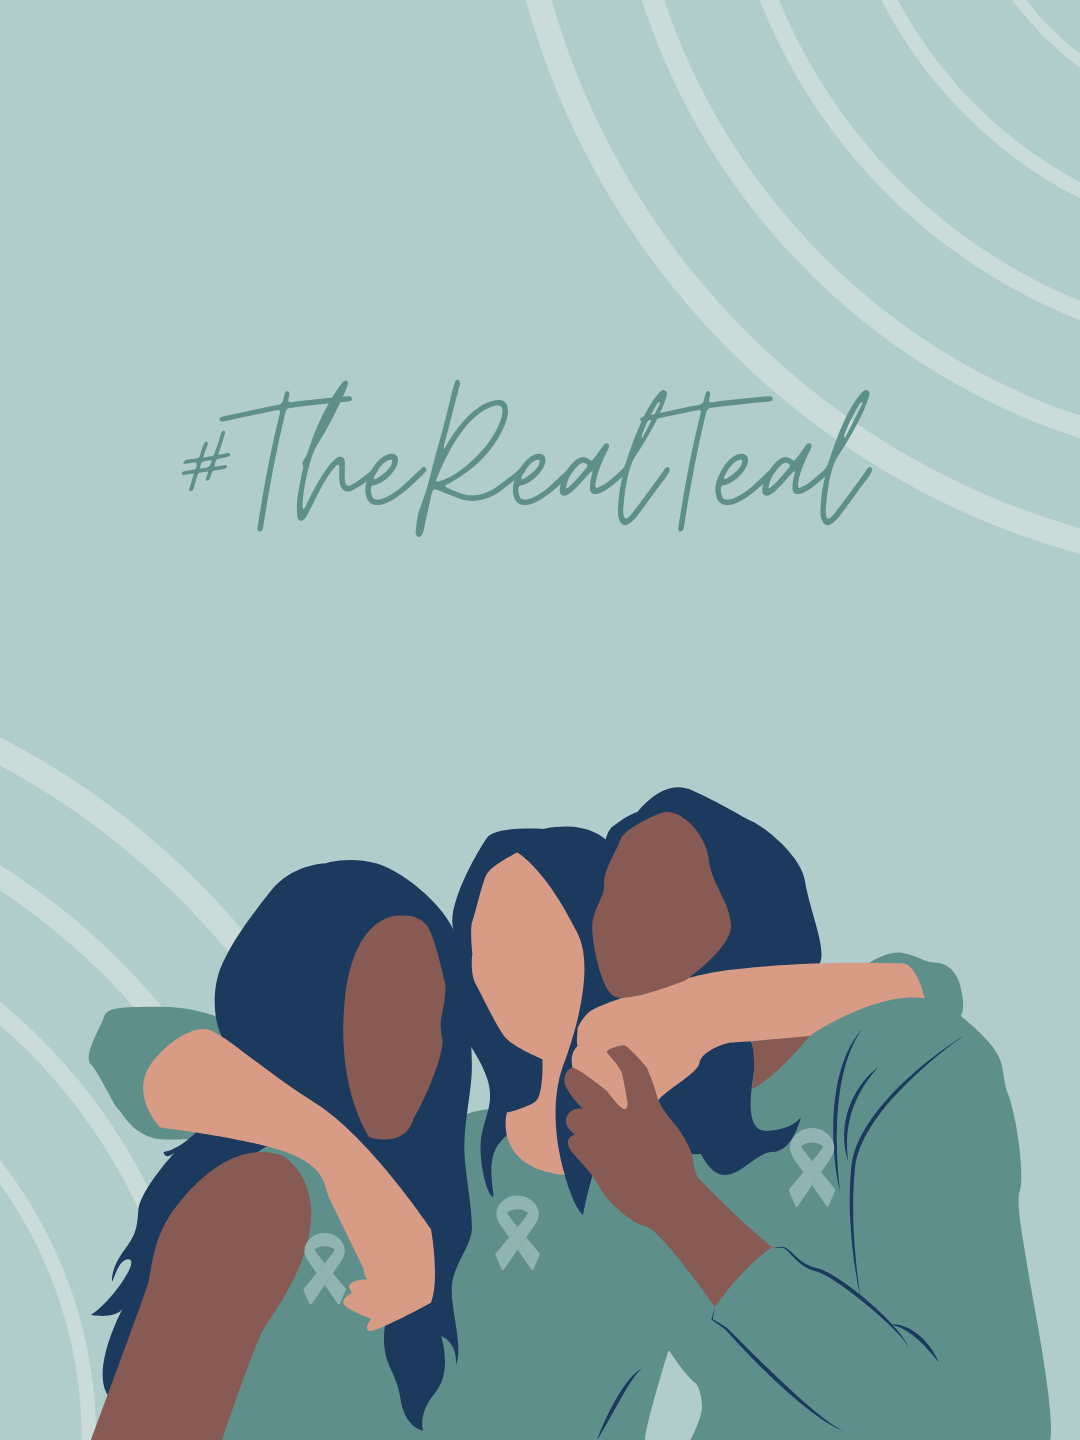 Meet the GYN Cancer Advocates Behind #TheRealTeal